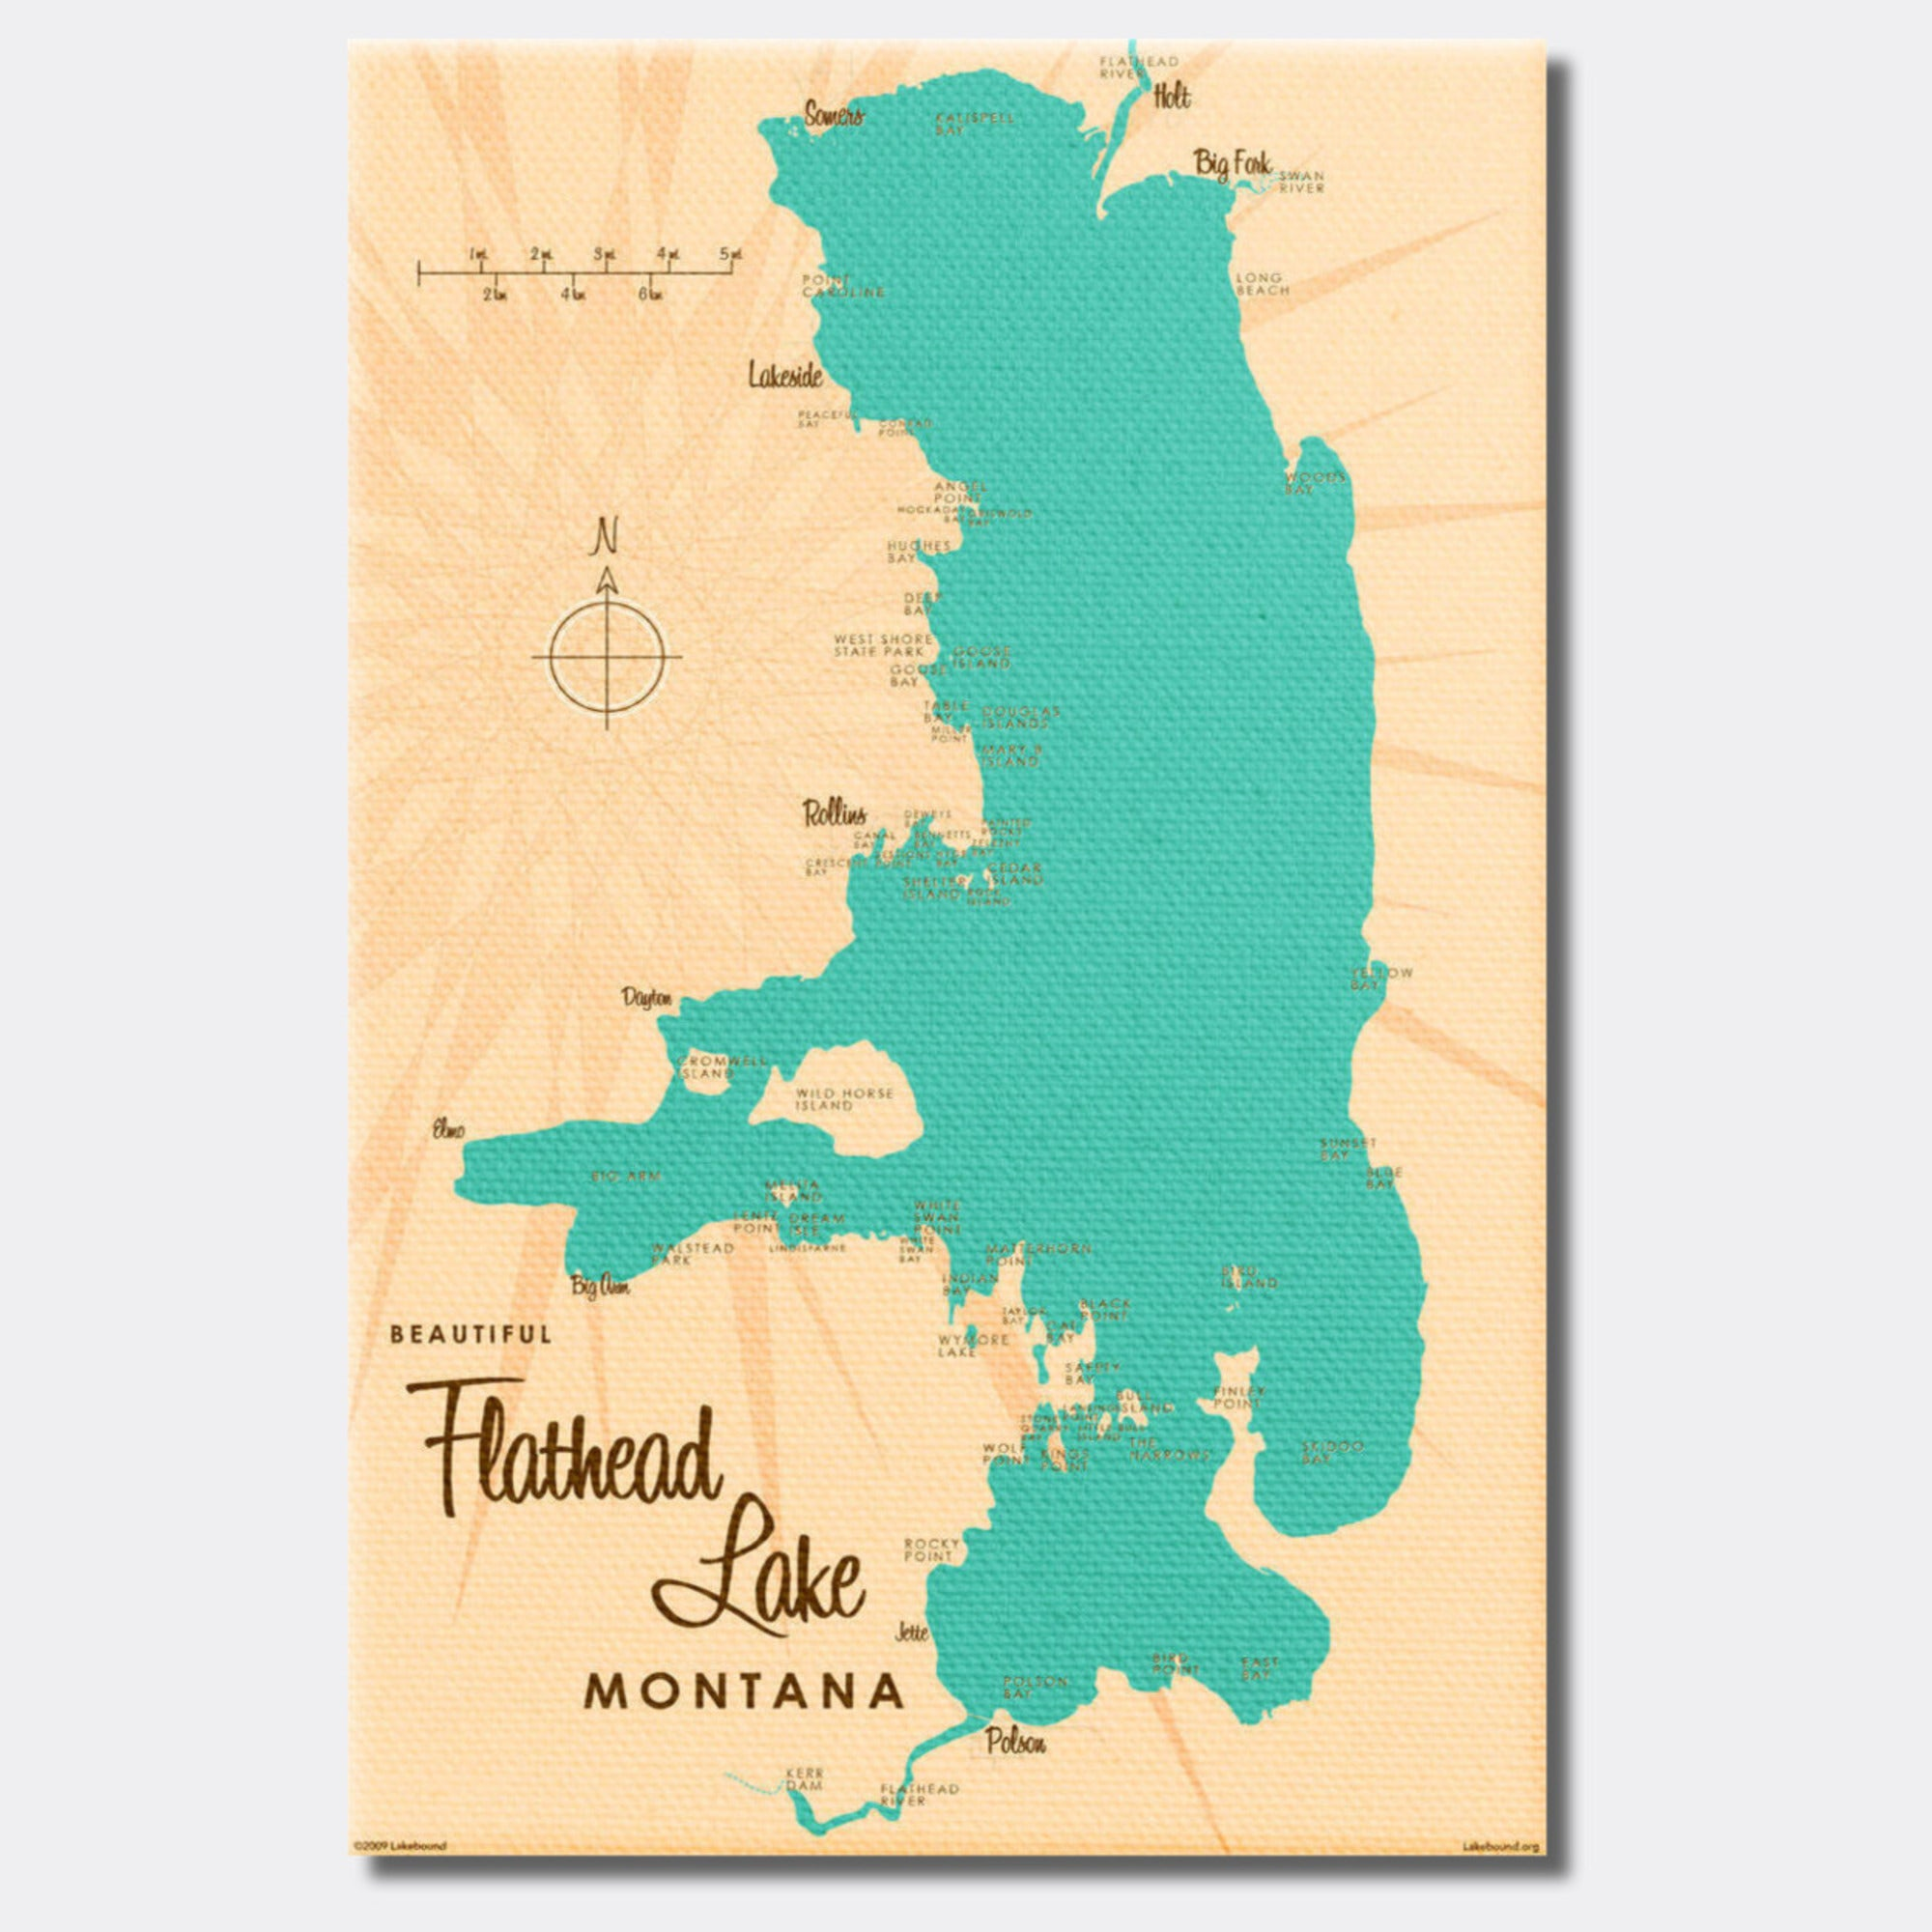 Flathead Lake Montana, Canvas Print